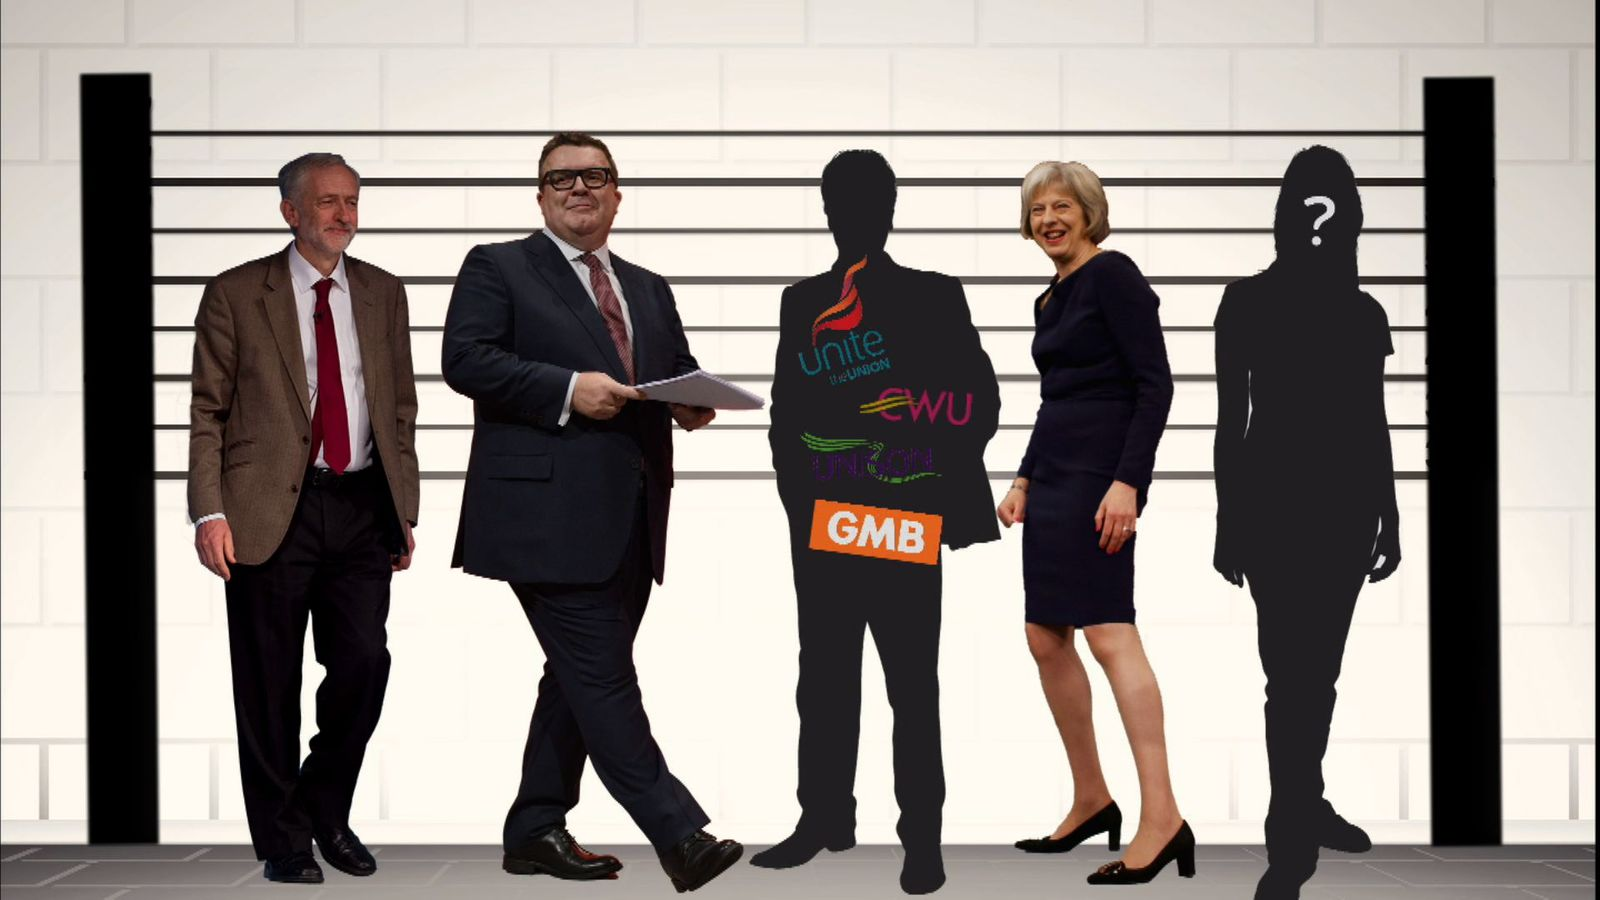 A line-up of potential suspects in the mysterious Labour manifesto leak